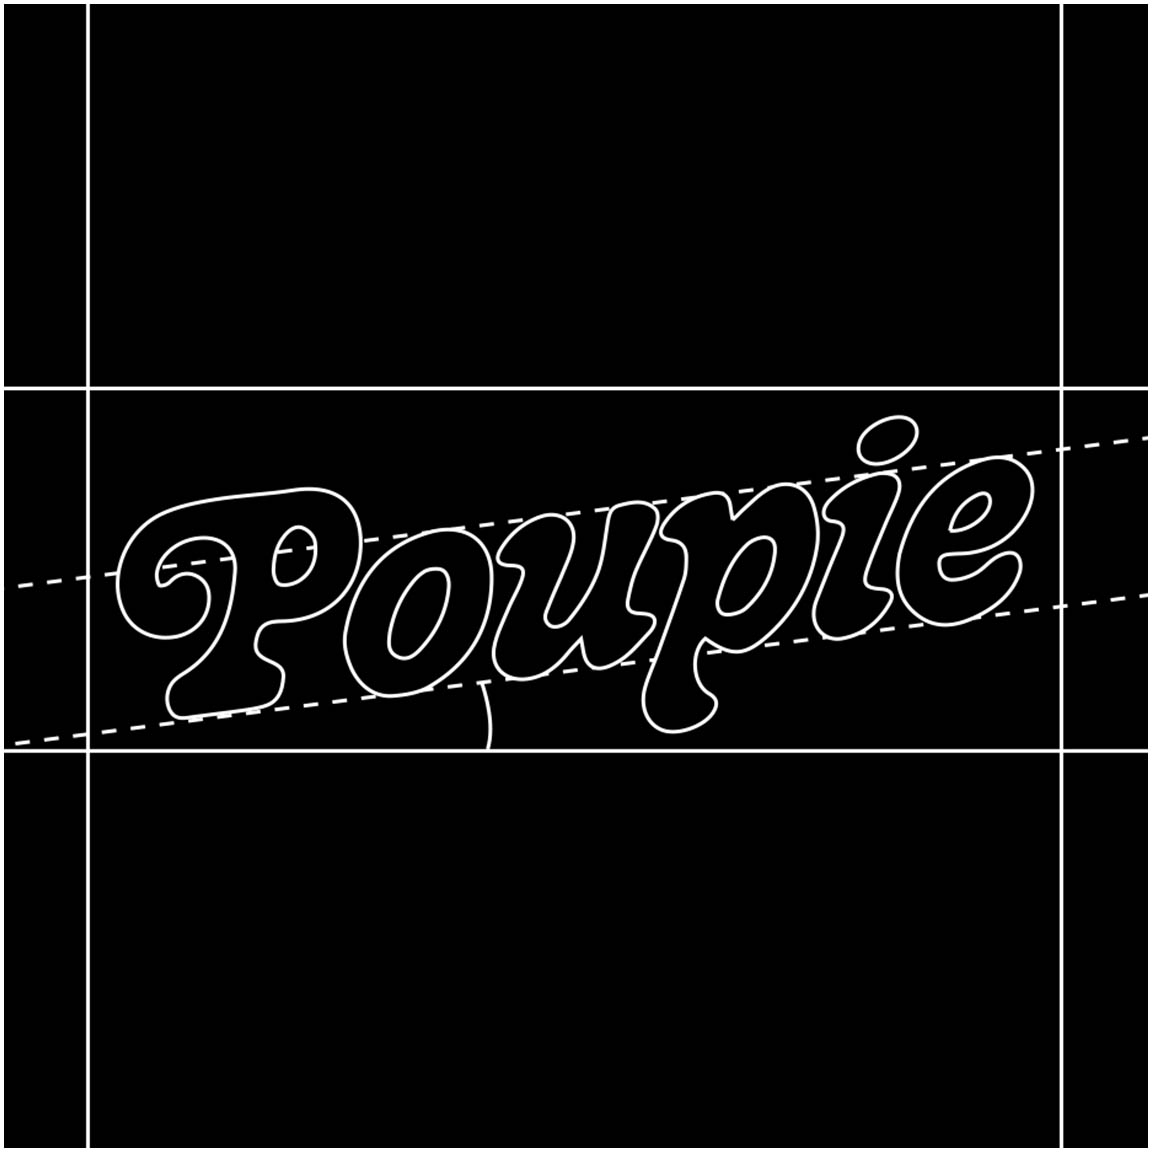 Logo of Poupie's music video produced by Perimetre, a creative studio based in Paris